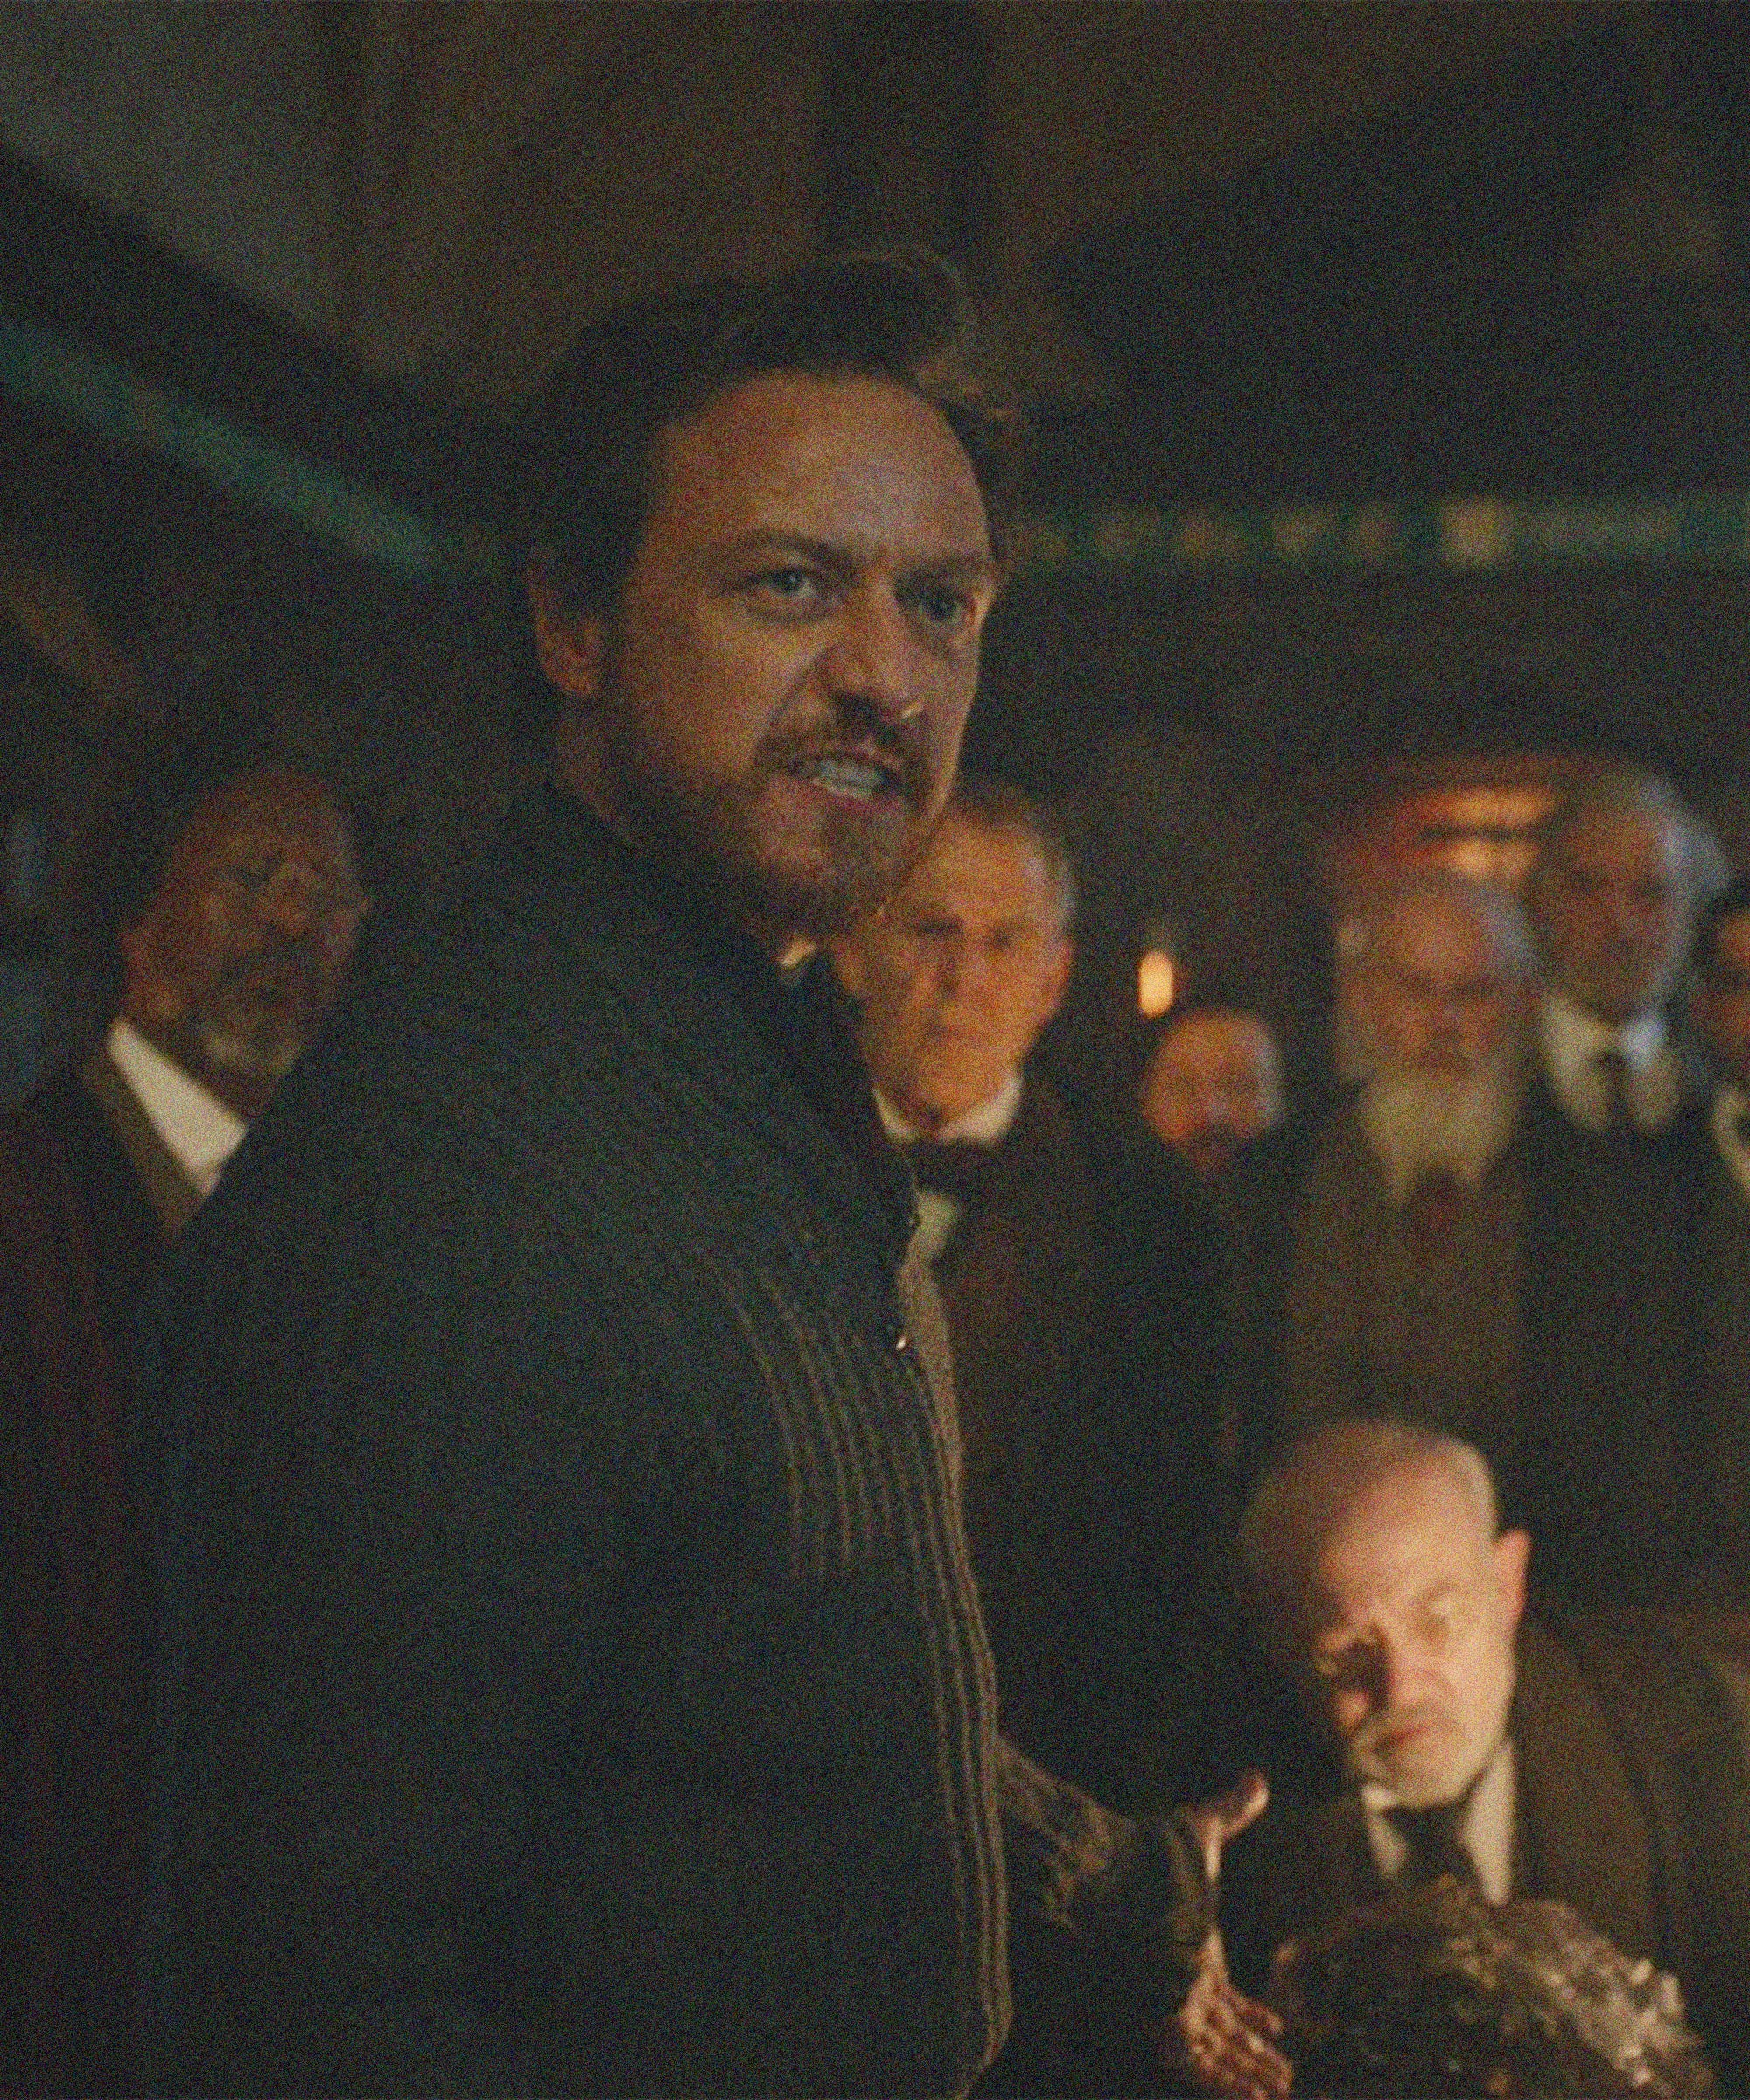 HBO Is Ready To Fill The GOT-Sized Hole In Your Heart With His Dark Materials